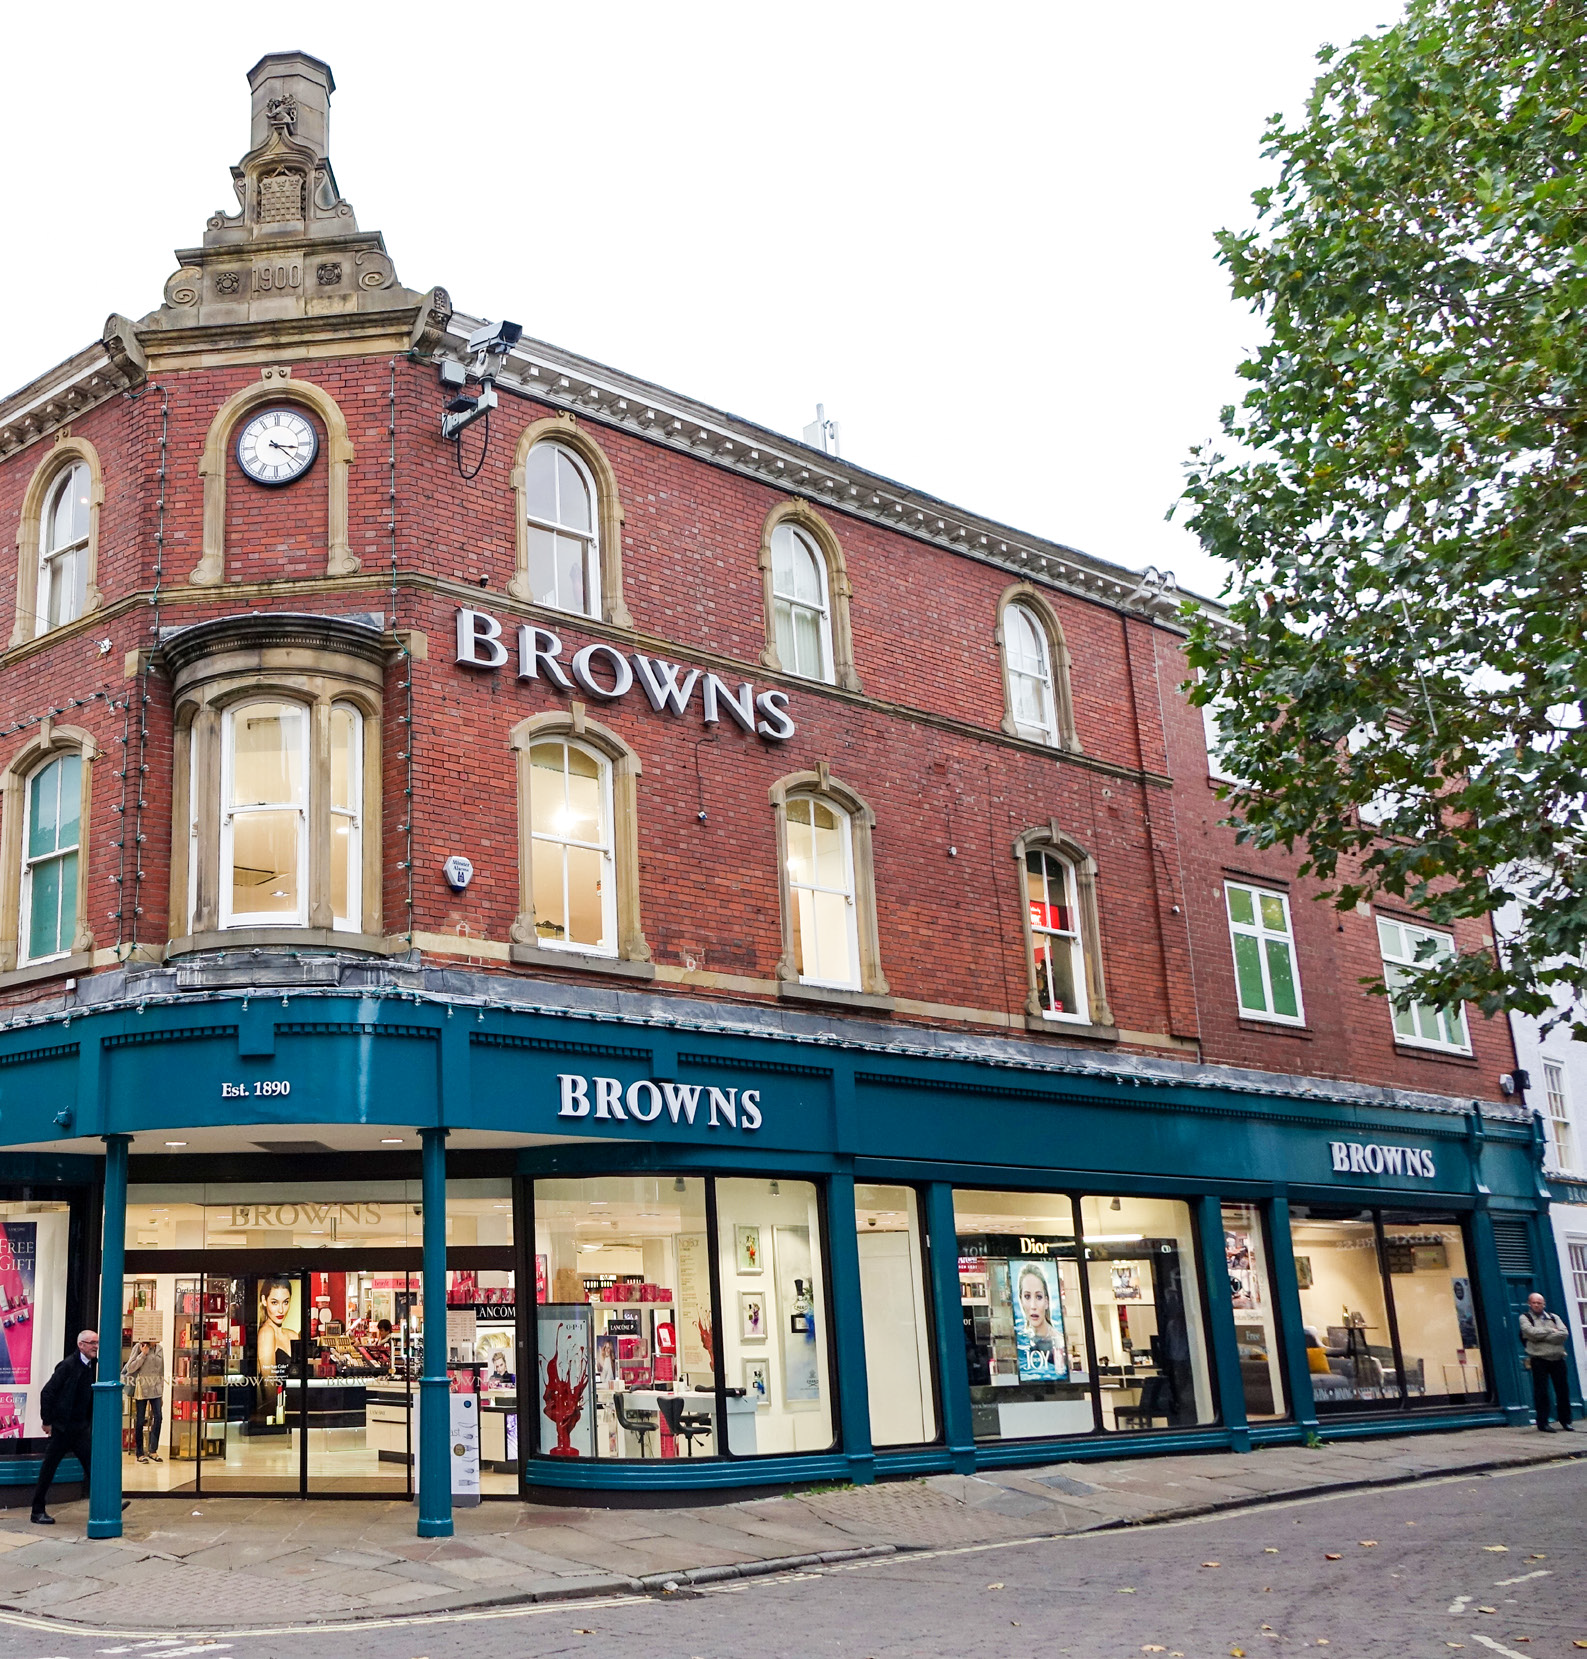 Browns department store in York